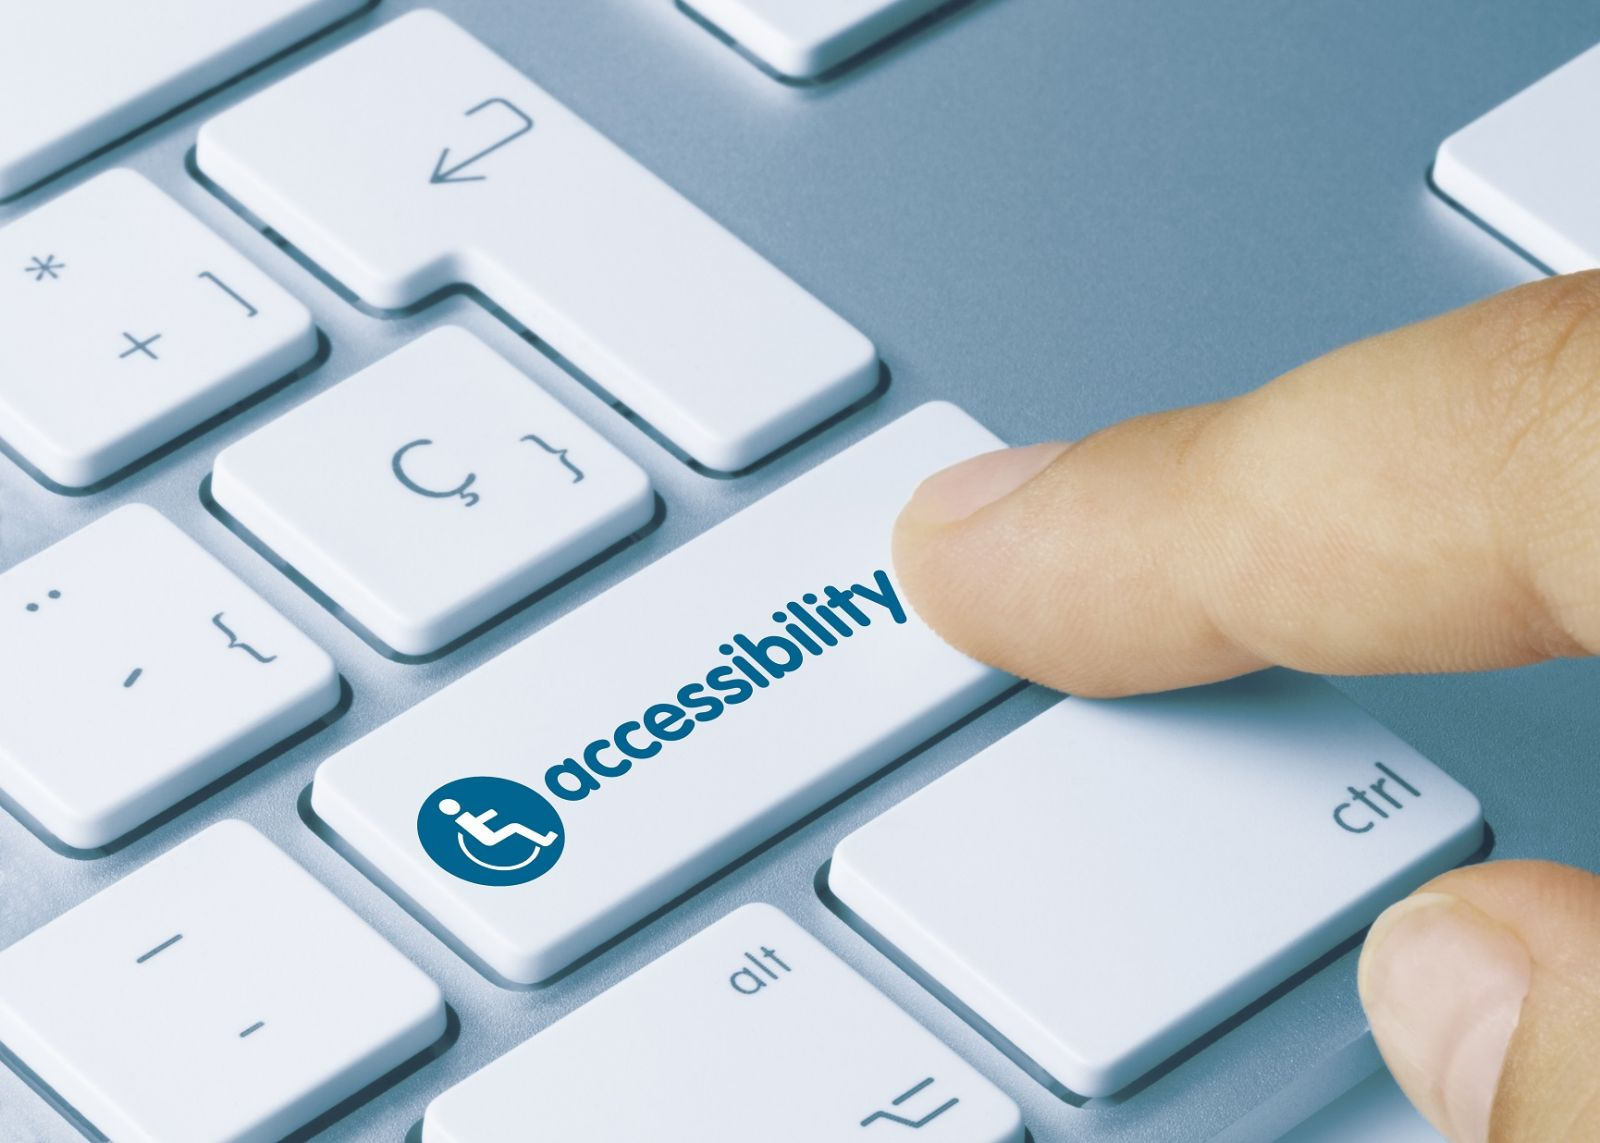 Image of an accessibility button on a laptop keyboard